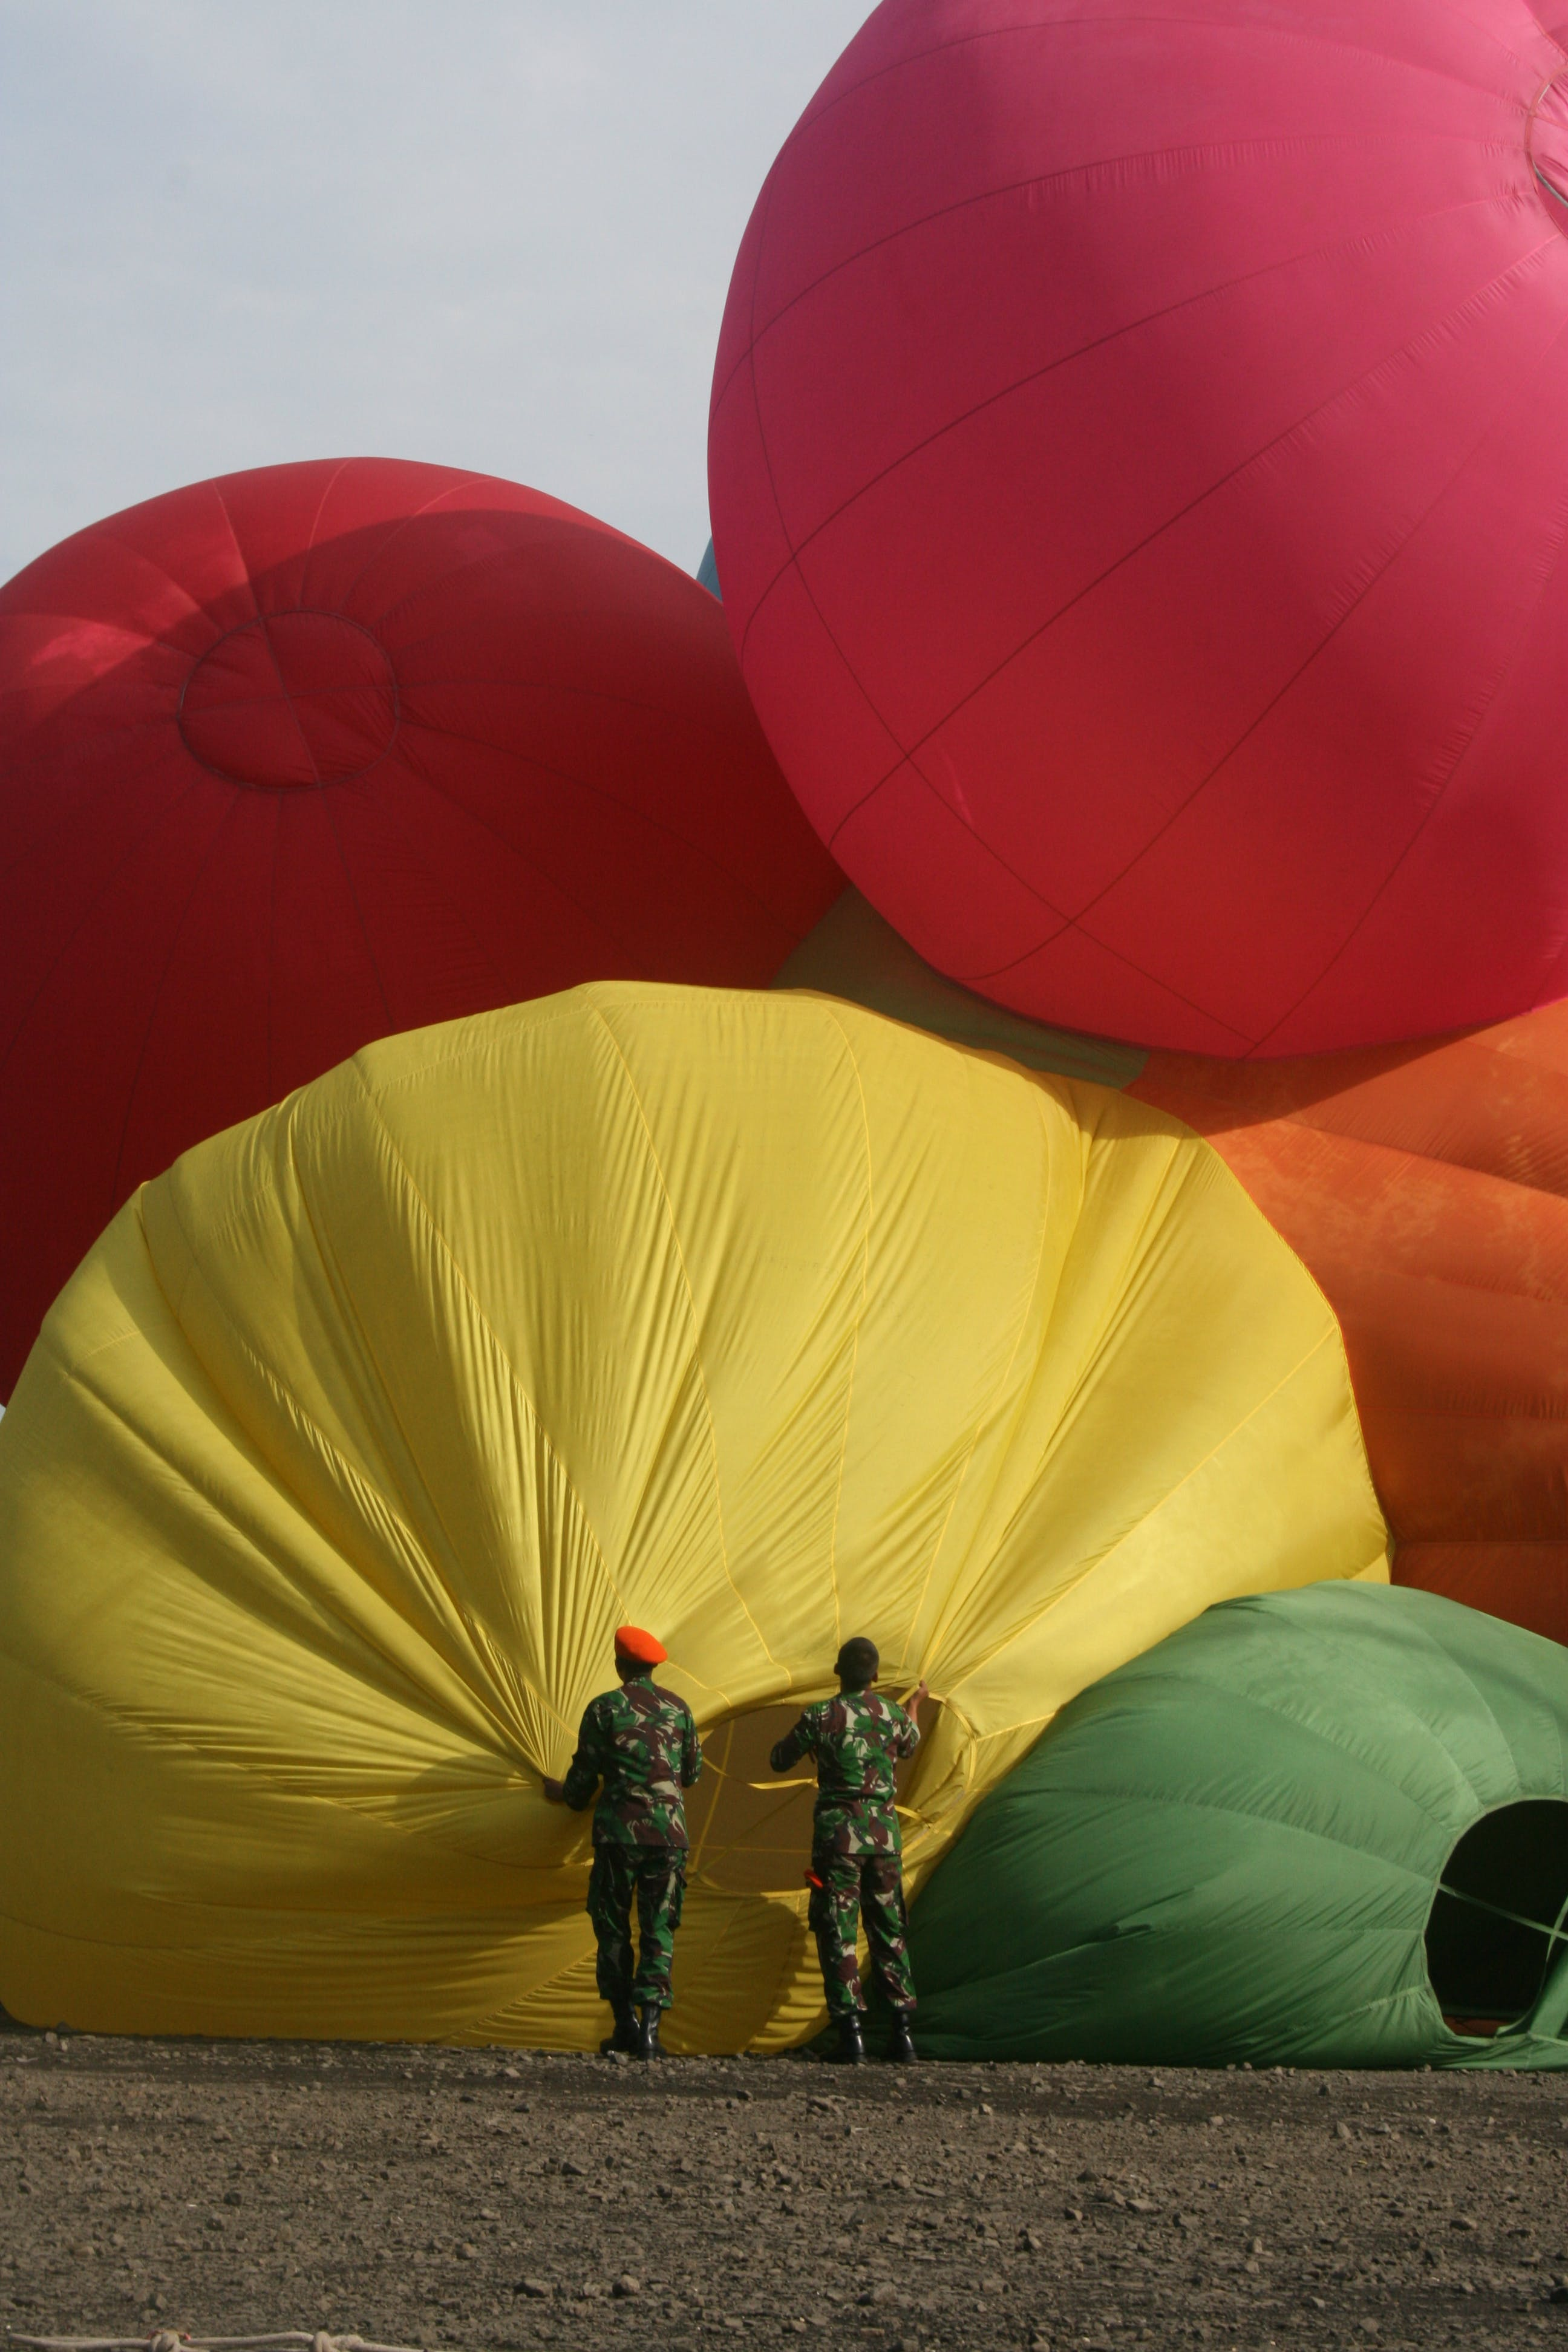 Free stock photo of hot air balloons, March 2010